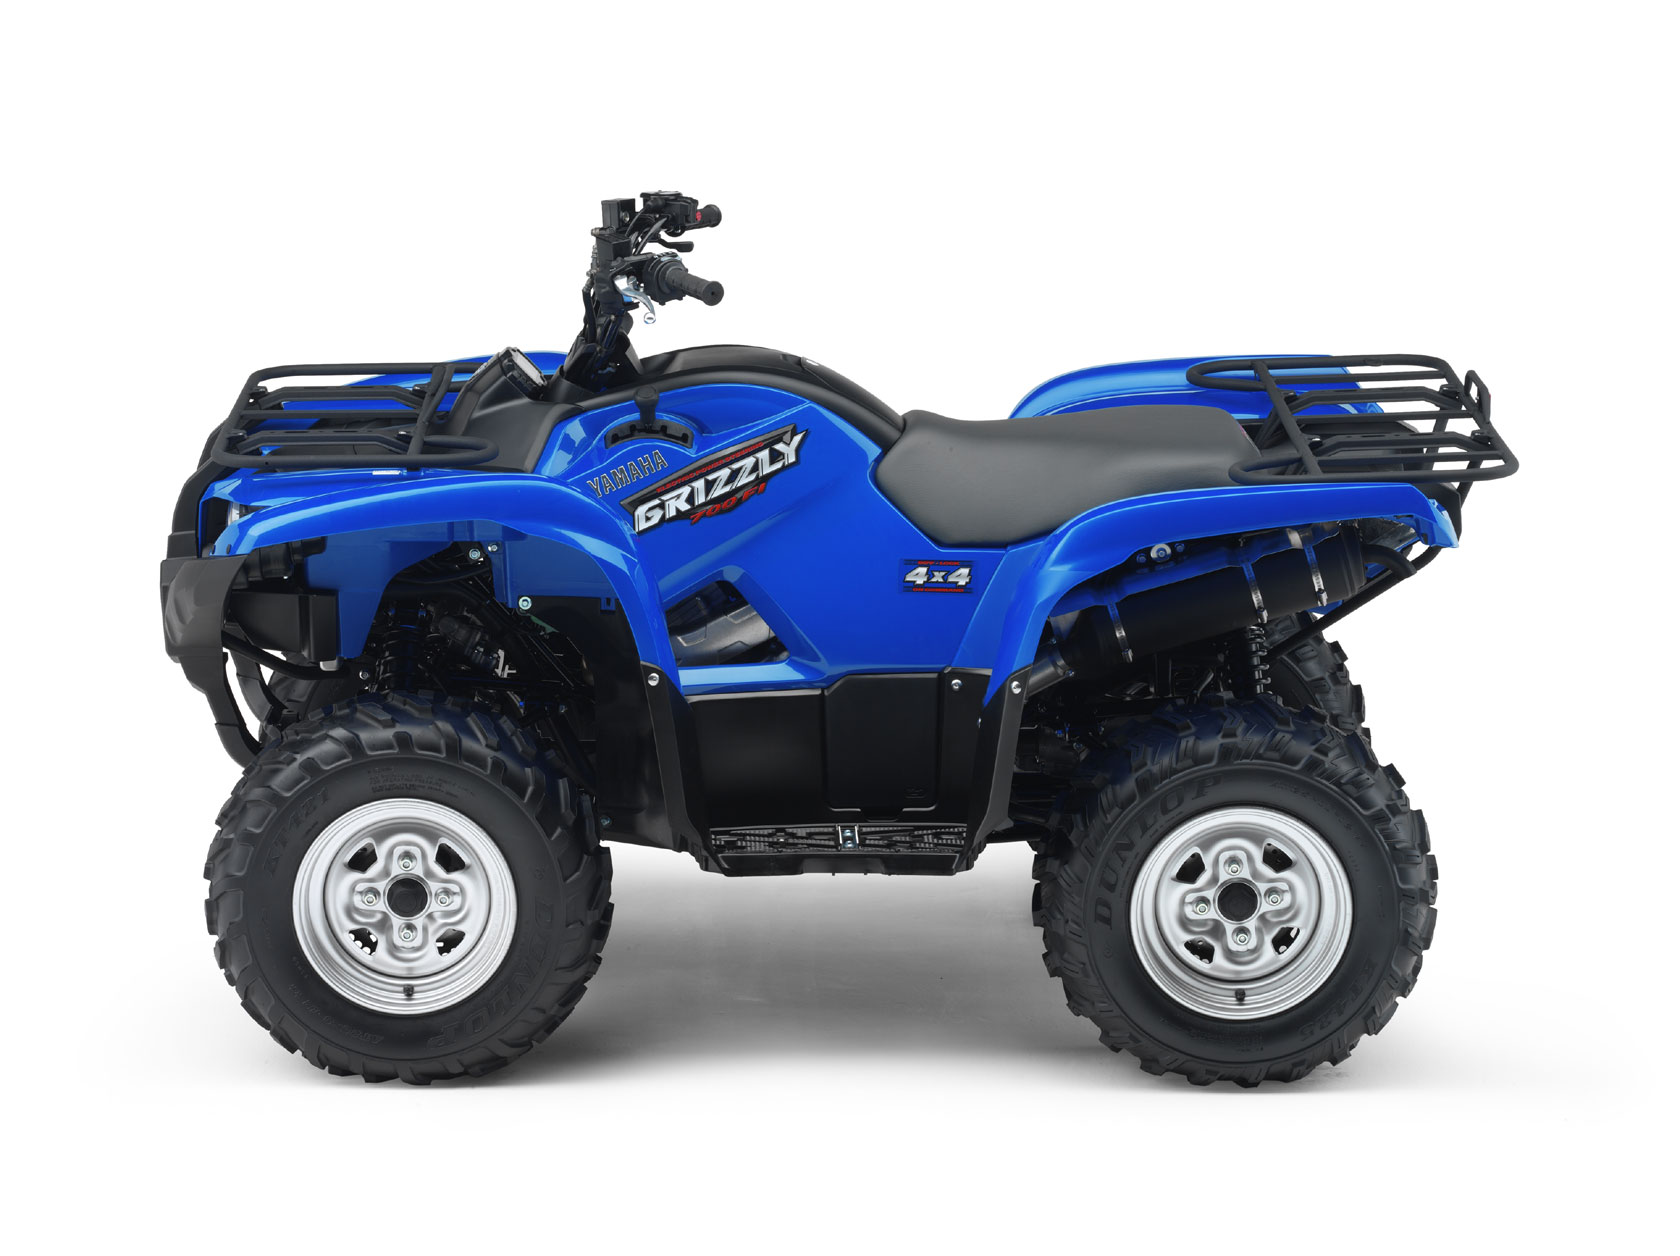 yamaha grizzly 700 fi 2008 2009 autoevolution. Black Bedroom Furniture Sets. Home Design Ideas